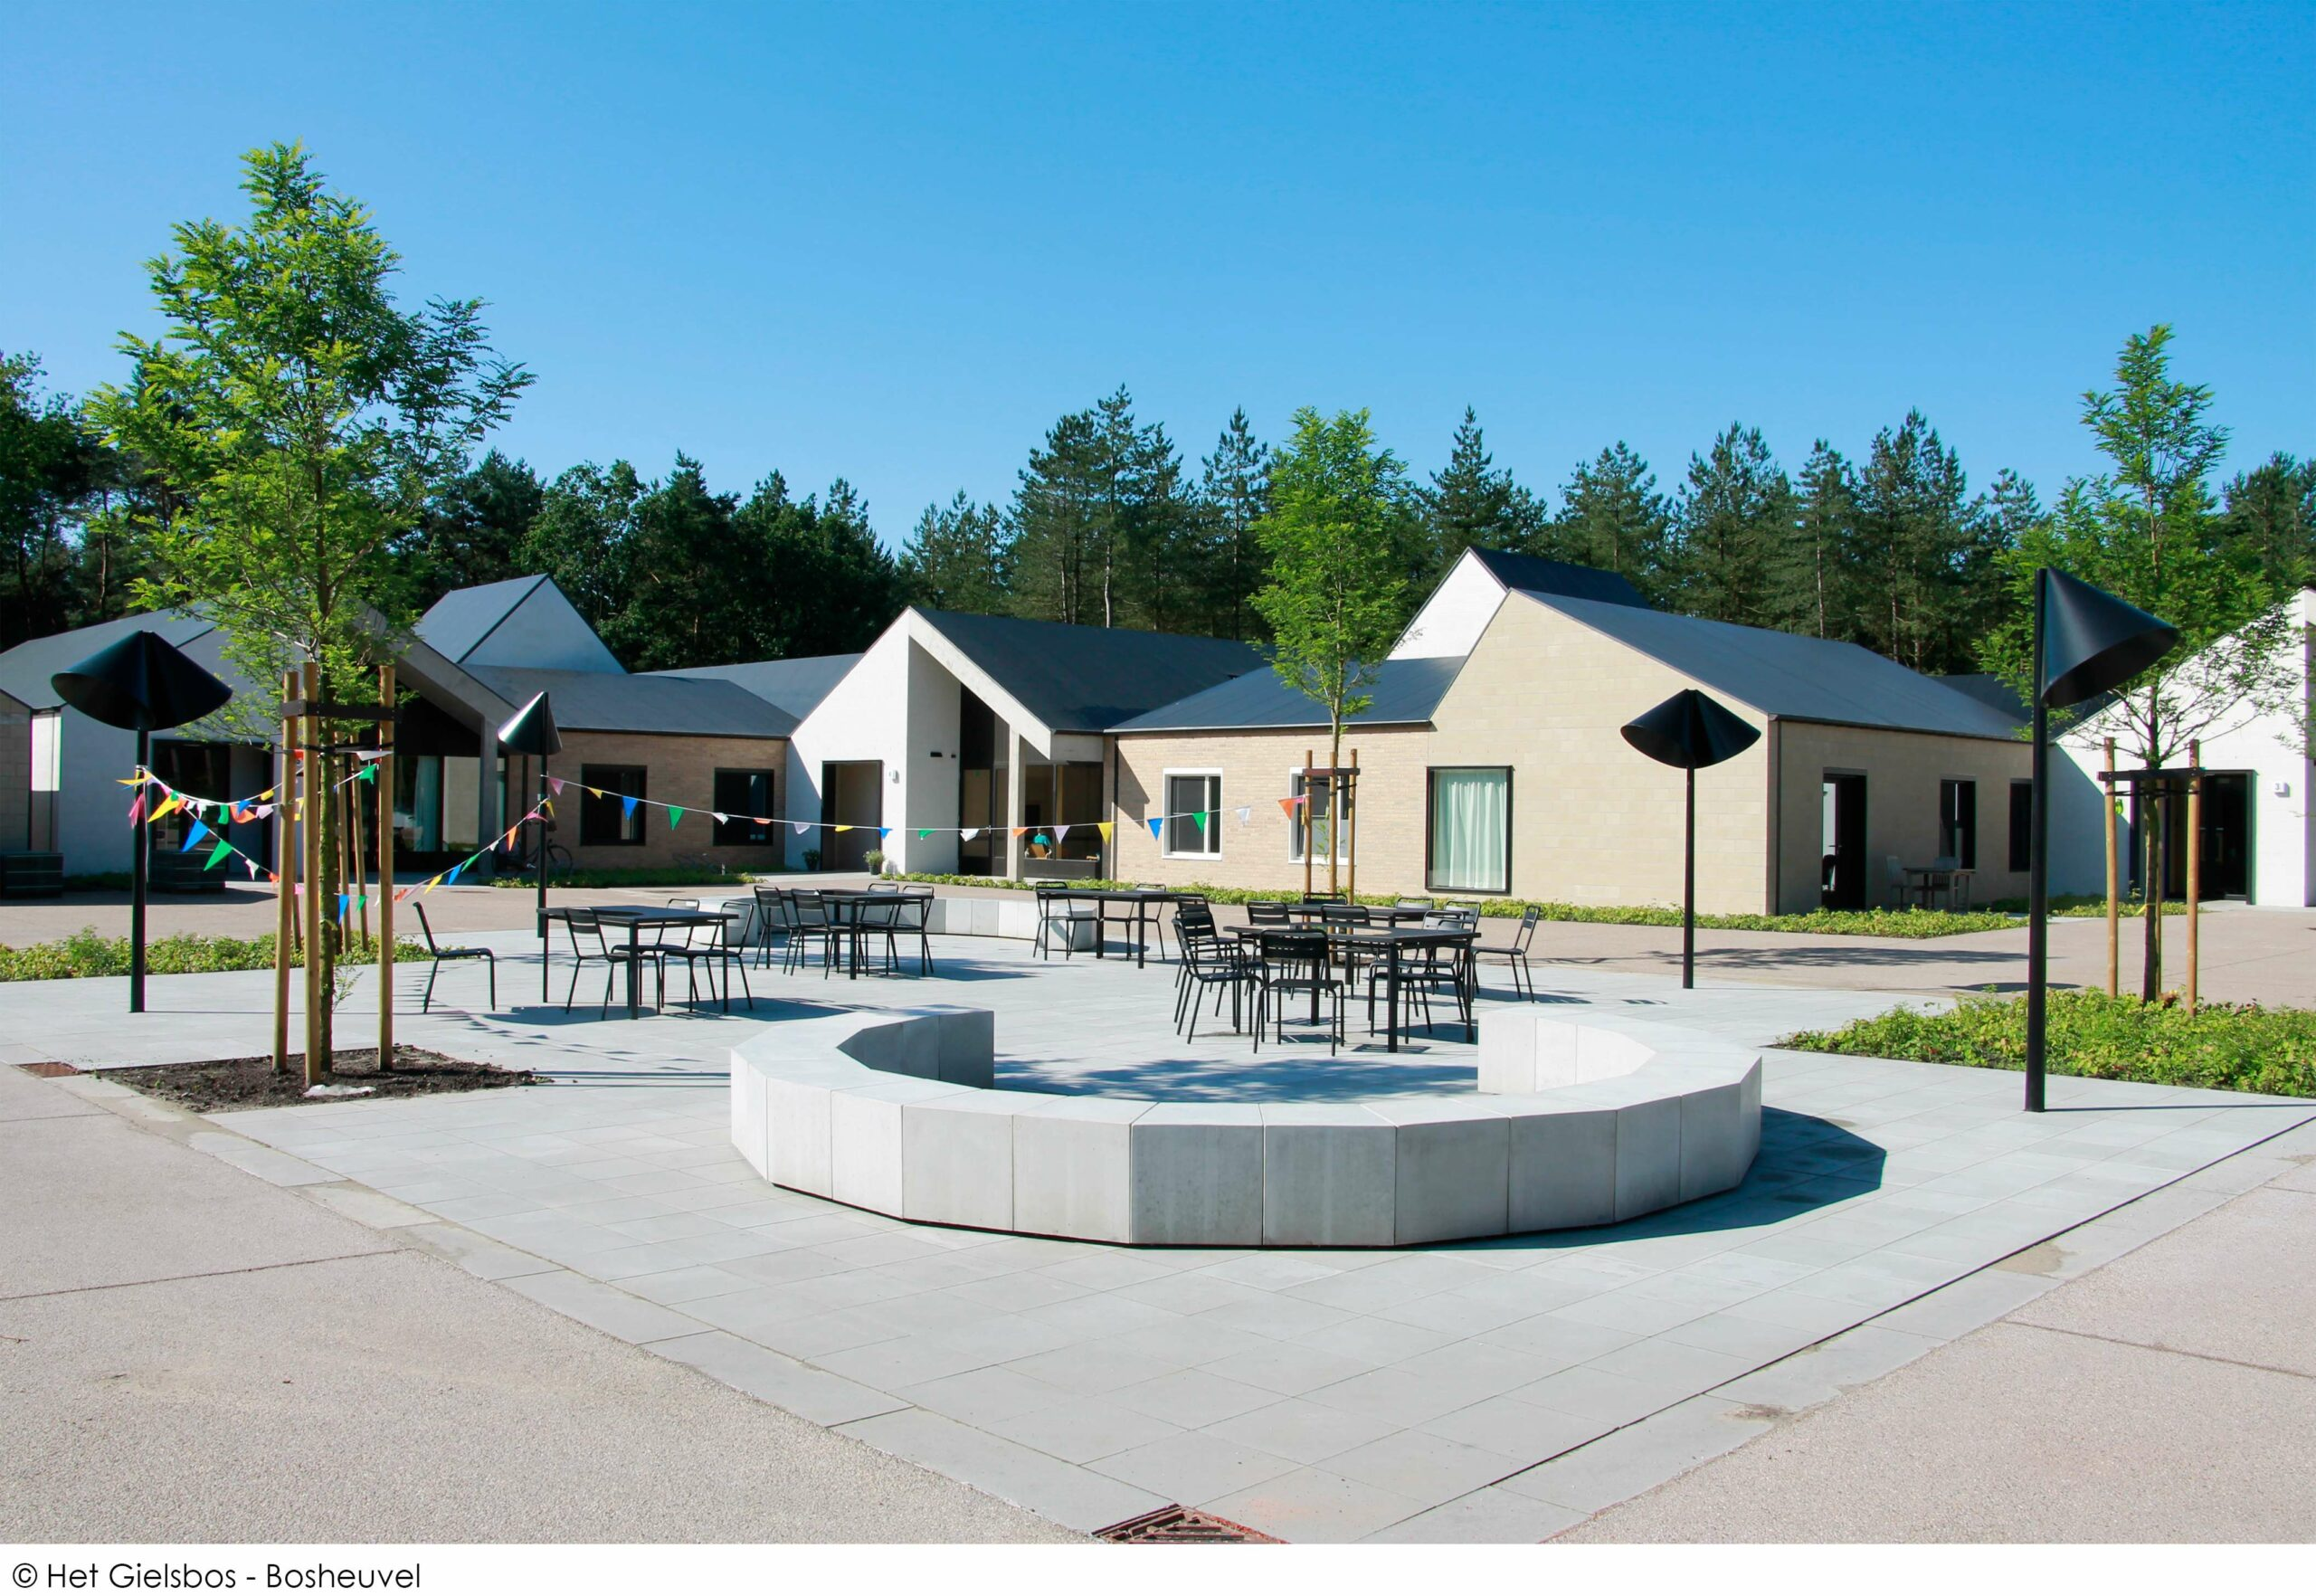 boydens-Residential and day care center 'GIELSBOS' for people with disabilities